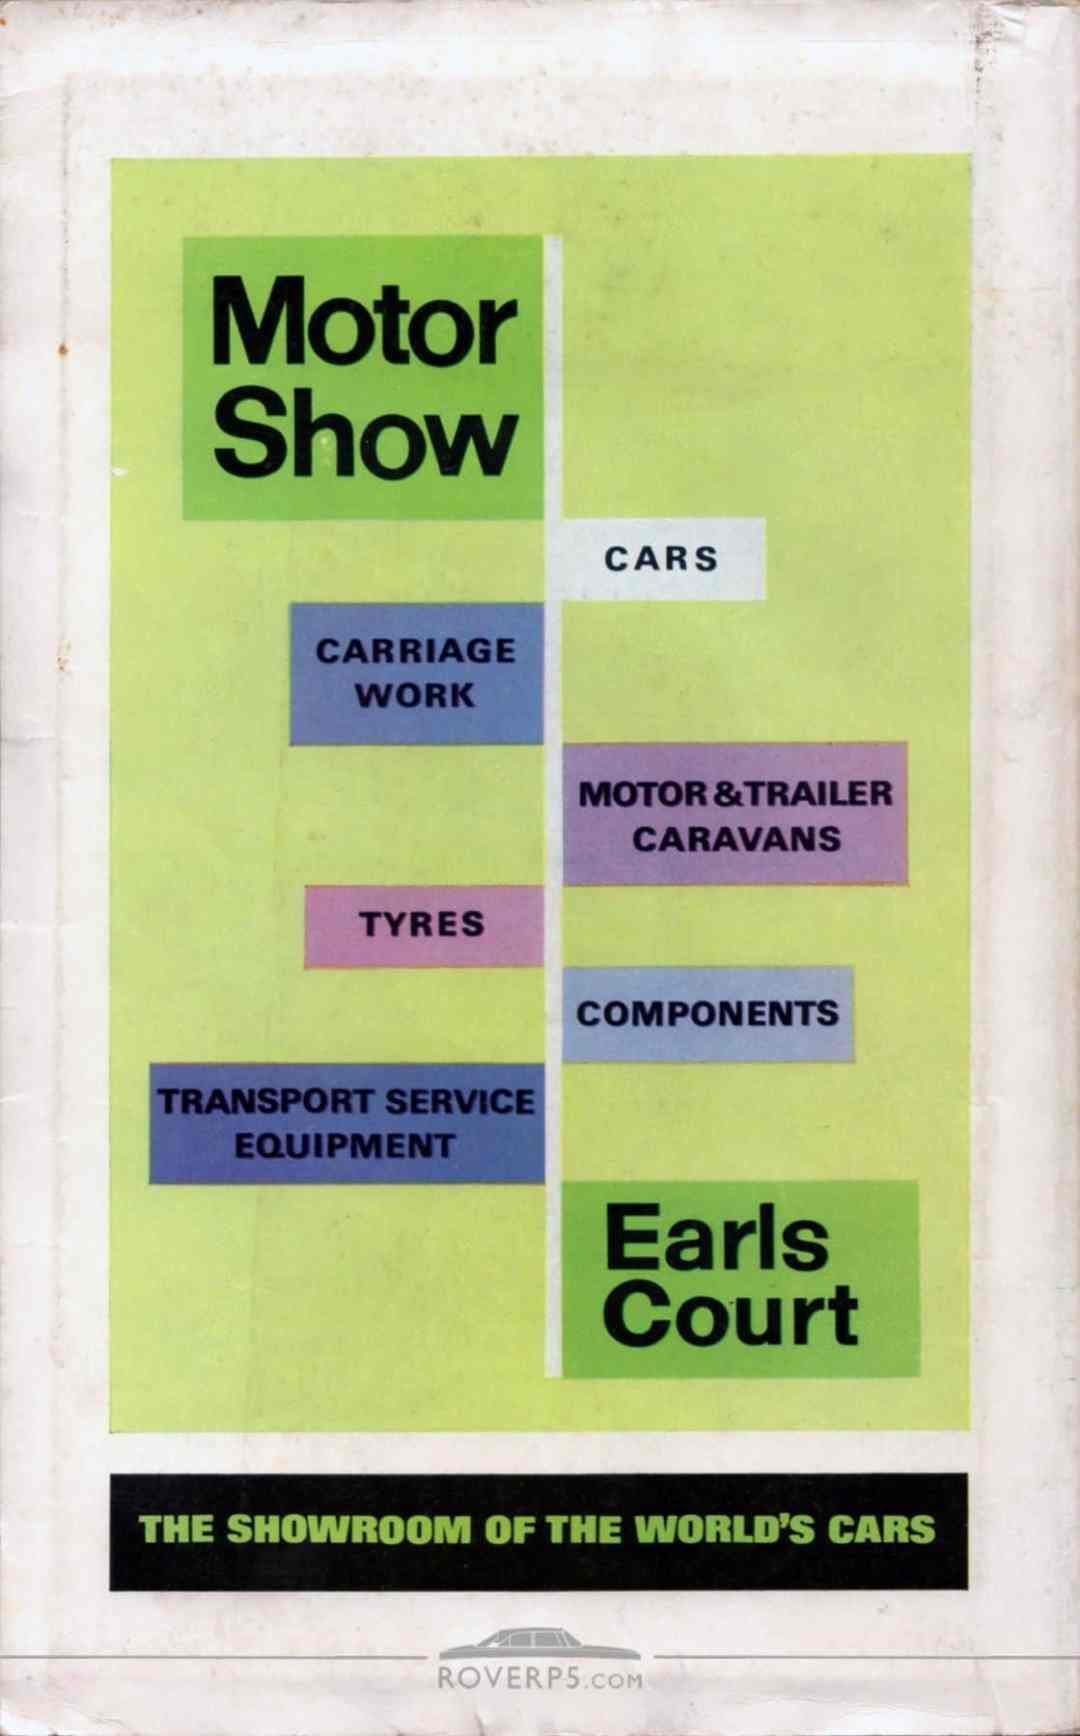 Catalogue - 196710 - Motor Show Guide - Rear Cover